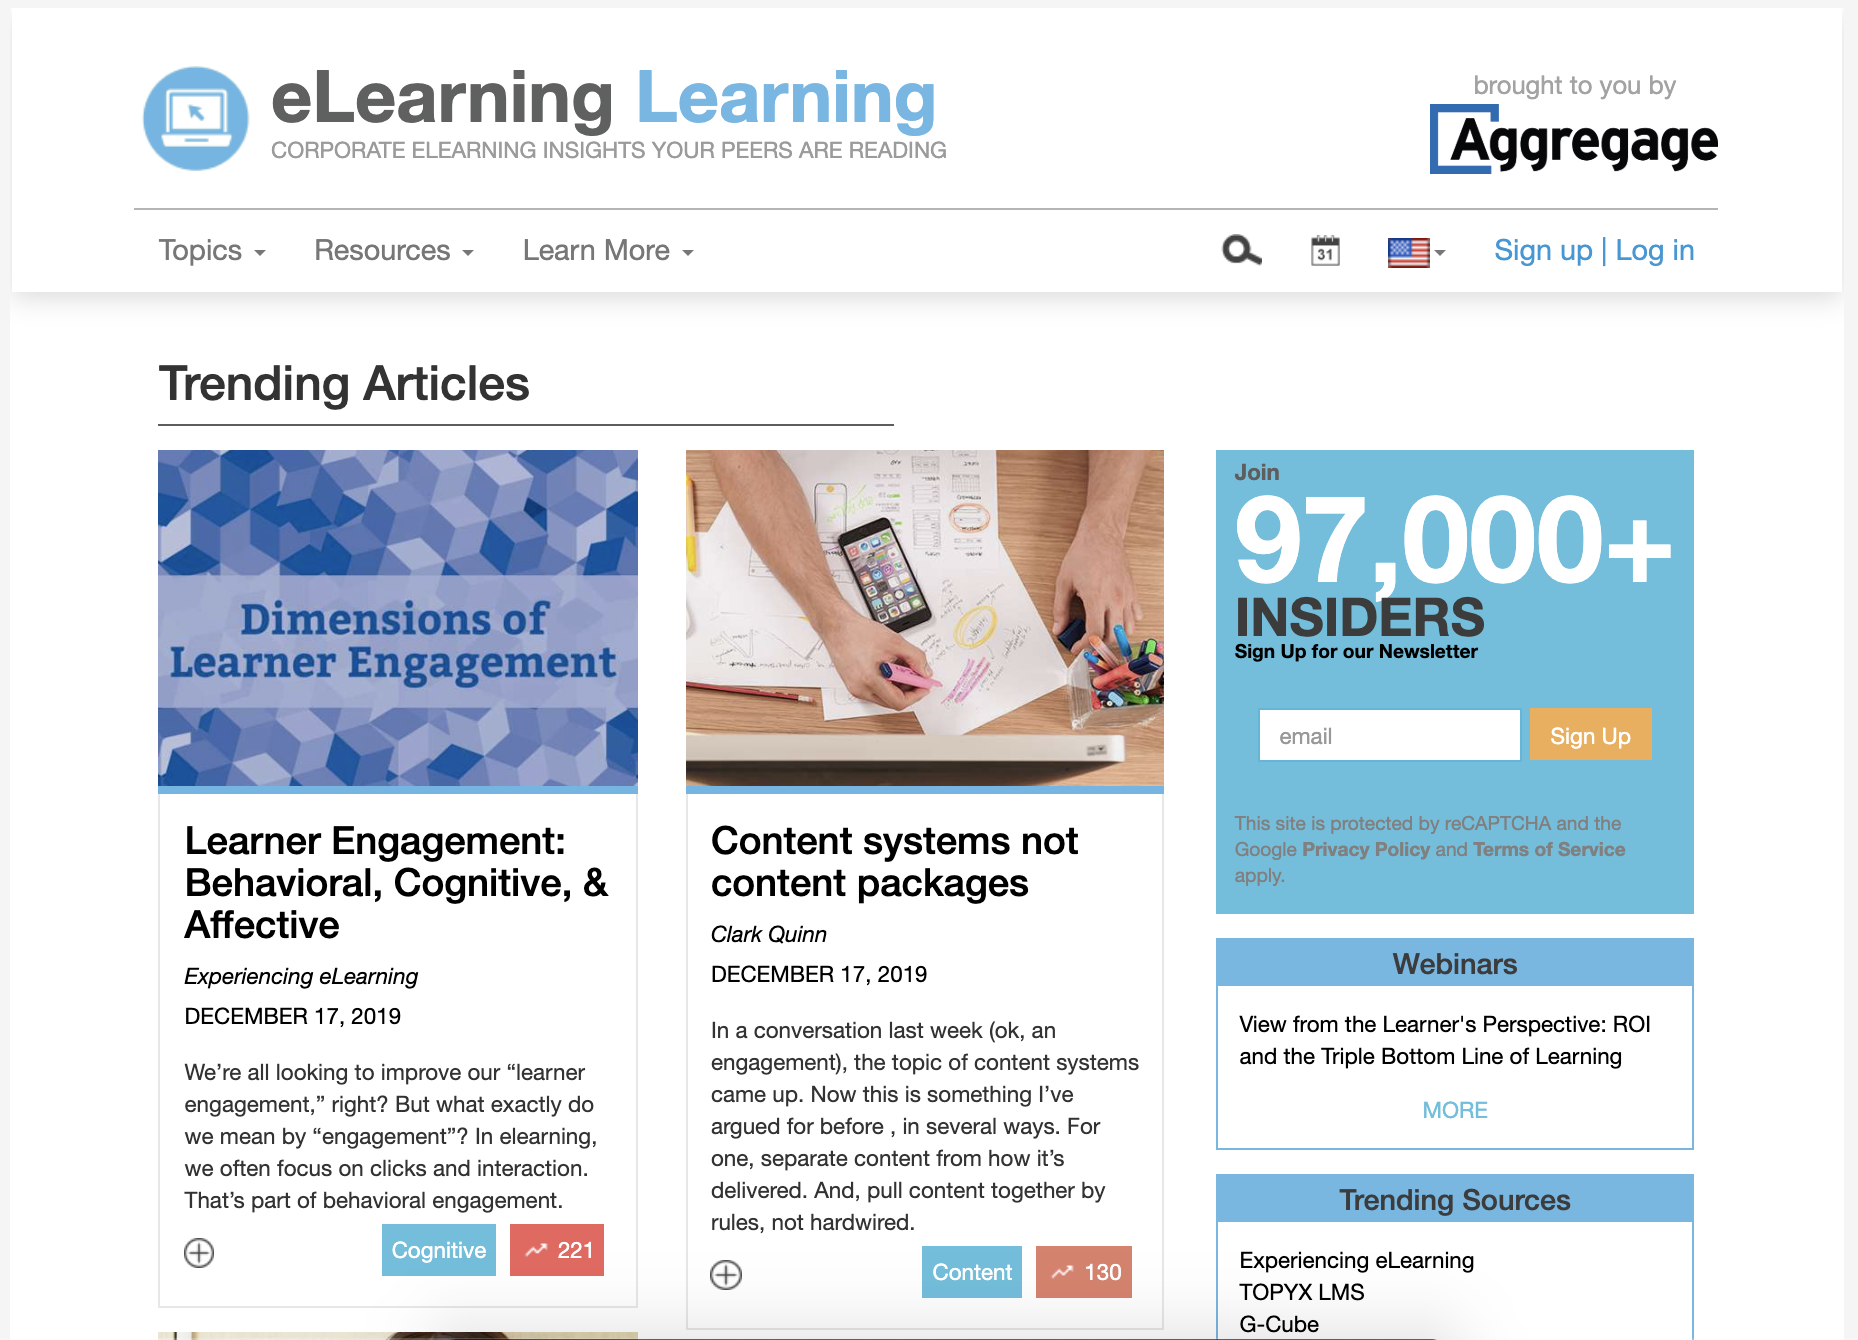 eLearning Learning eLearning Resources Guide